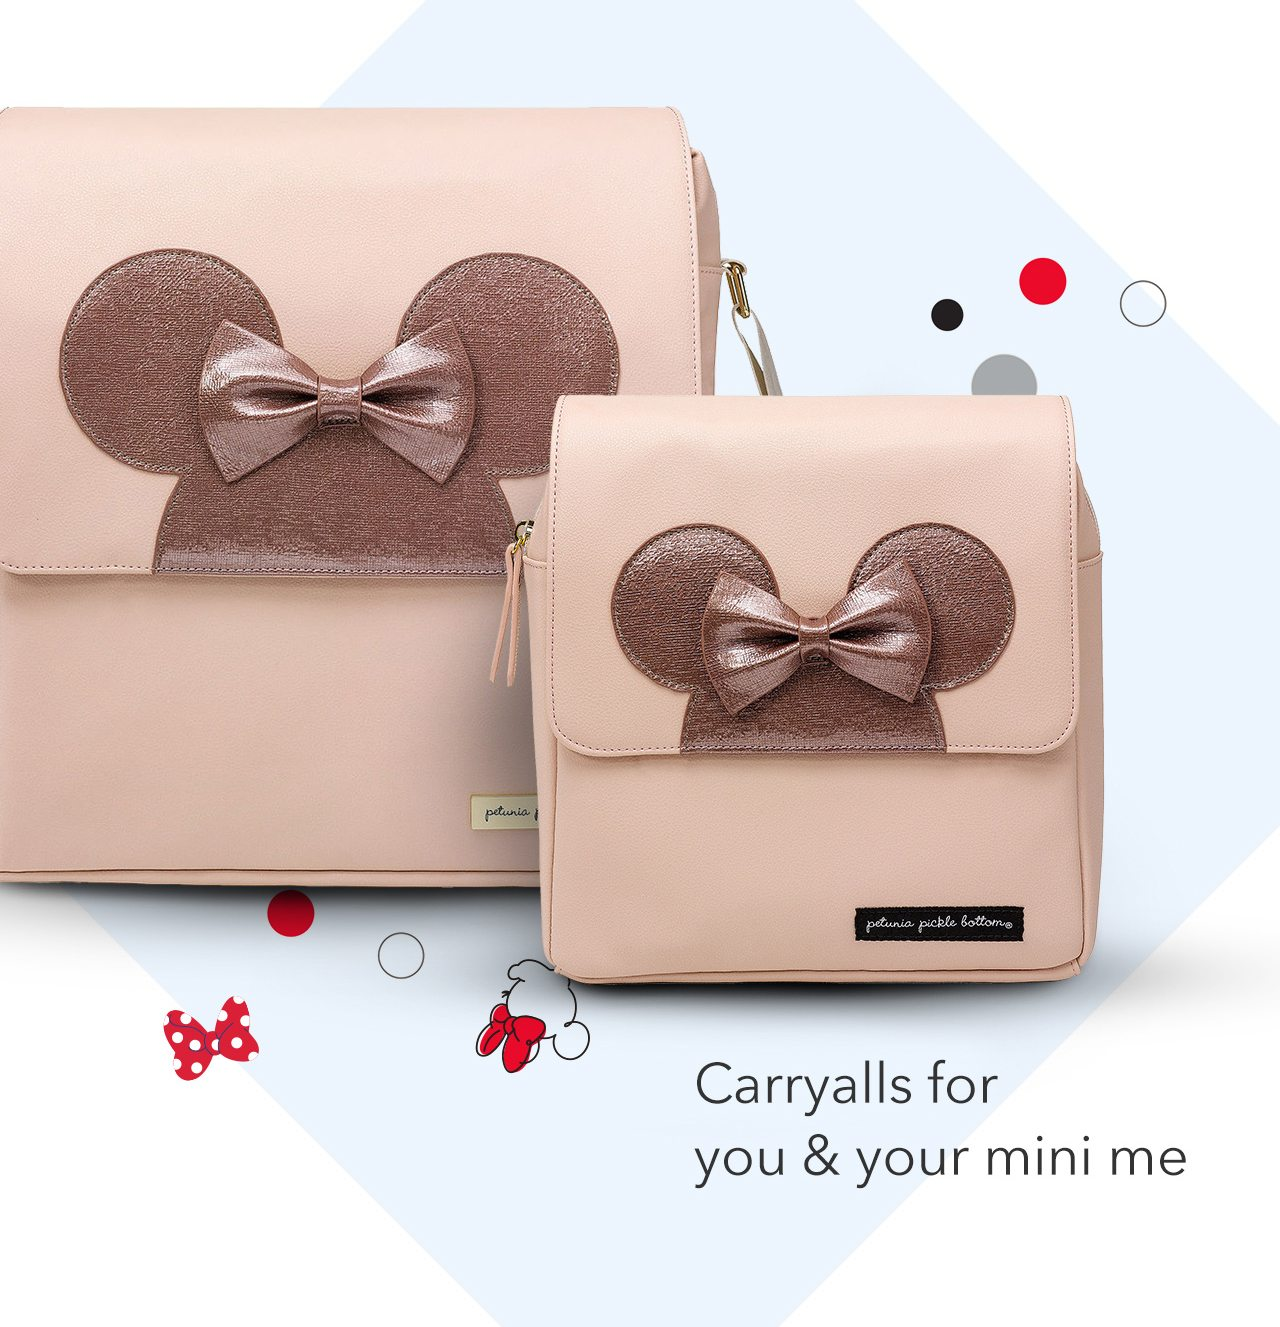 Carryall for you & your mini me